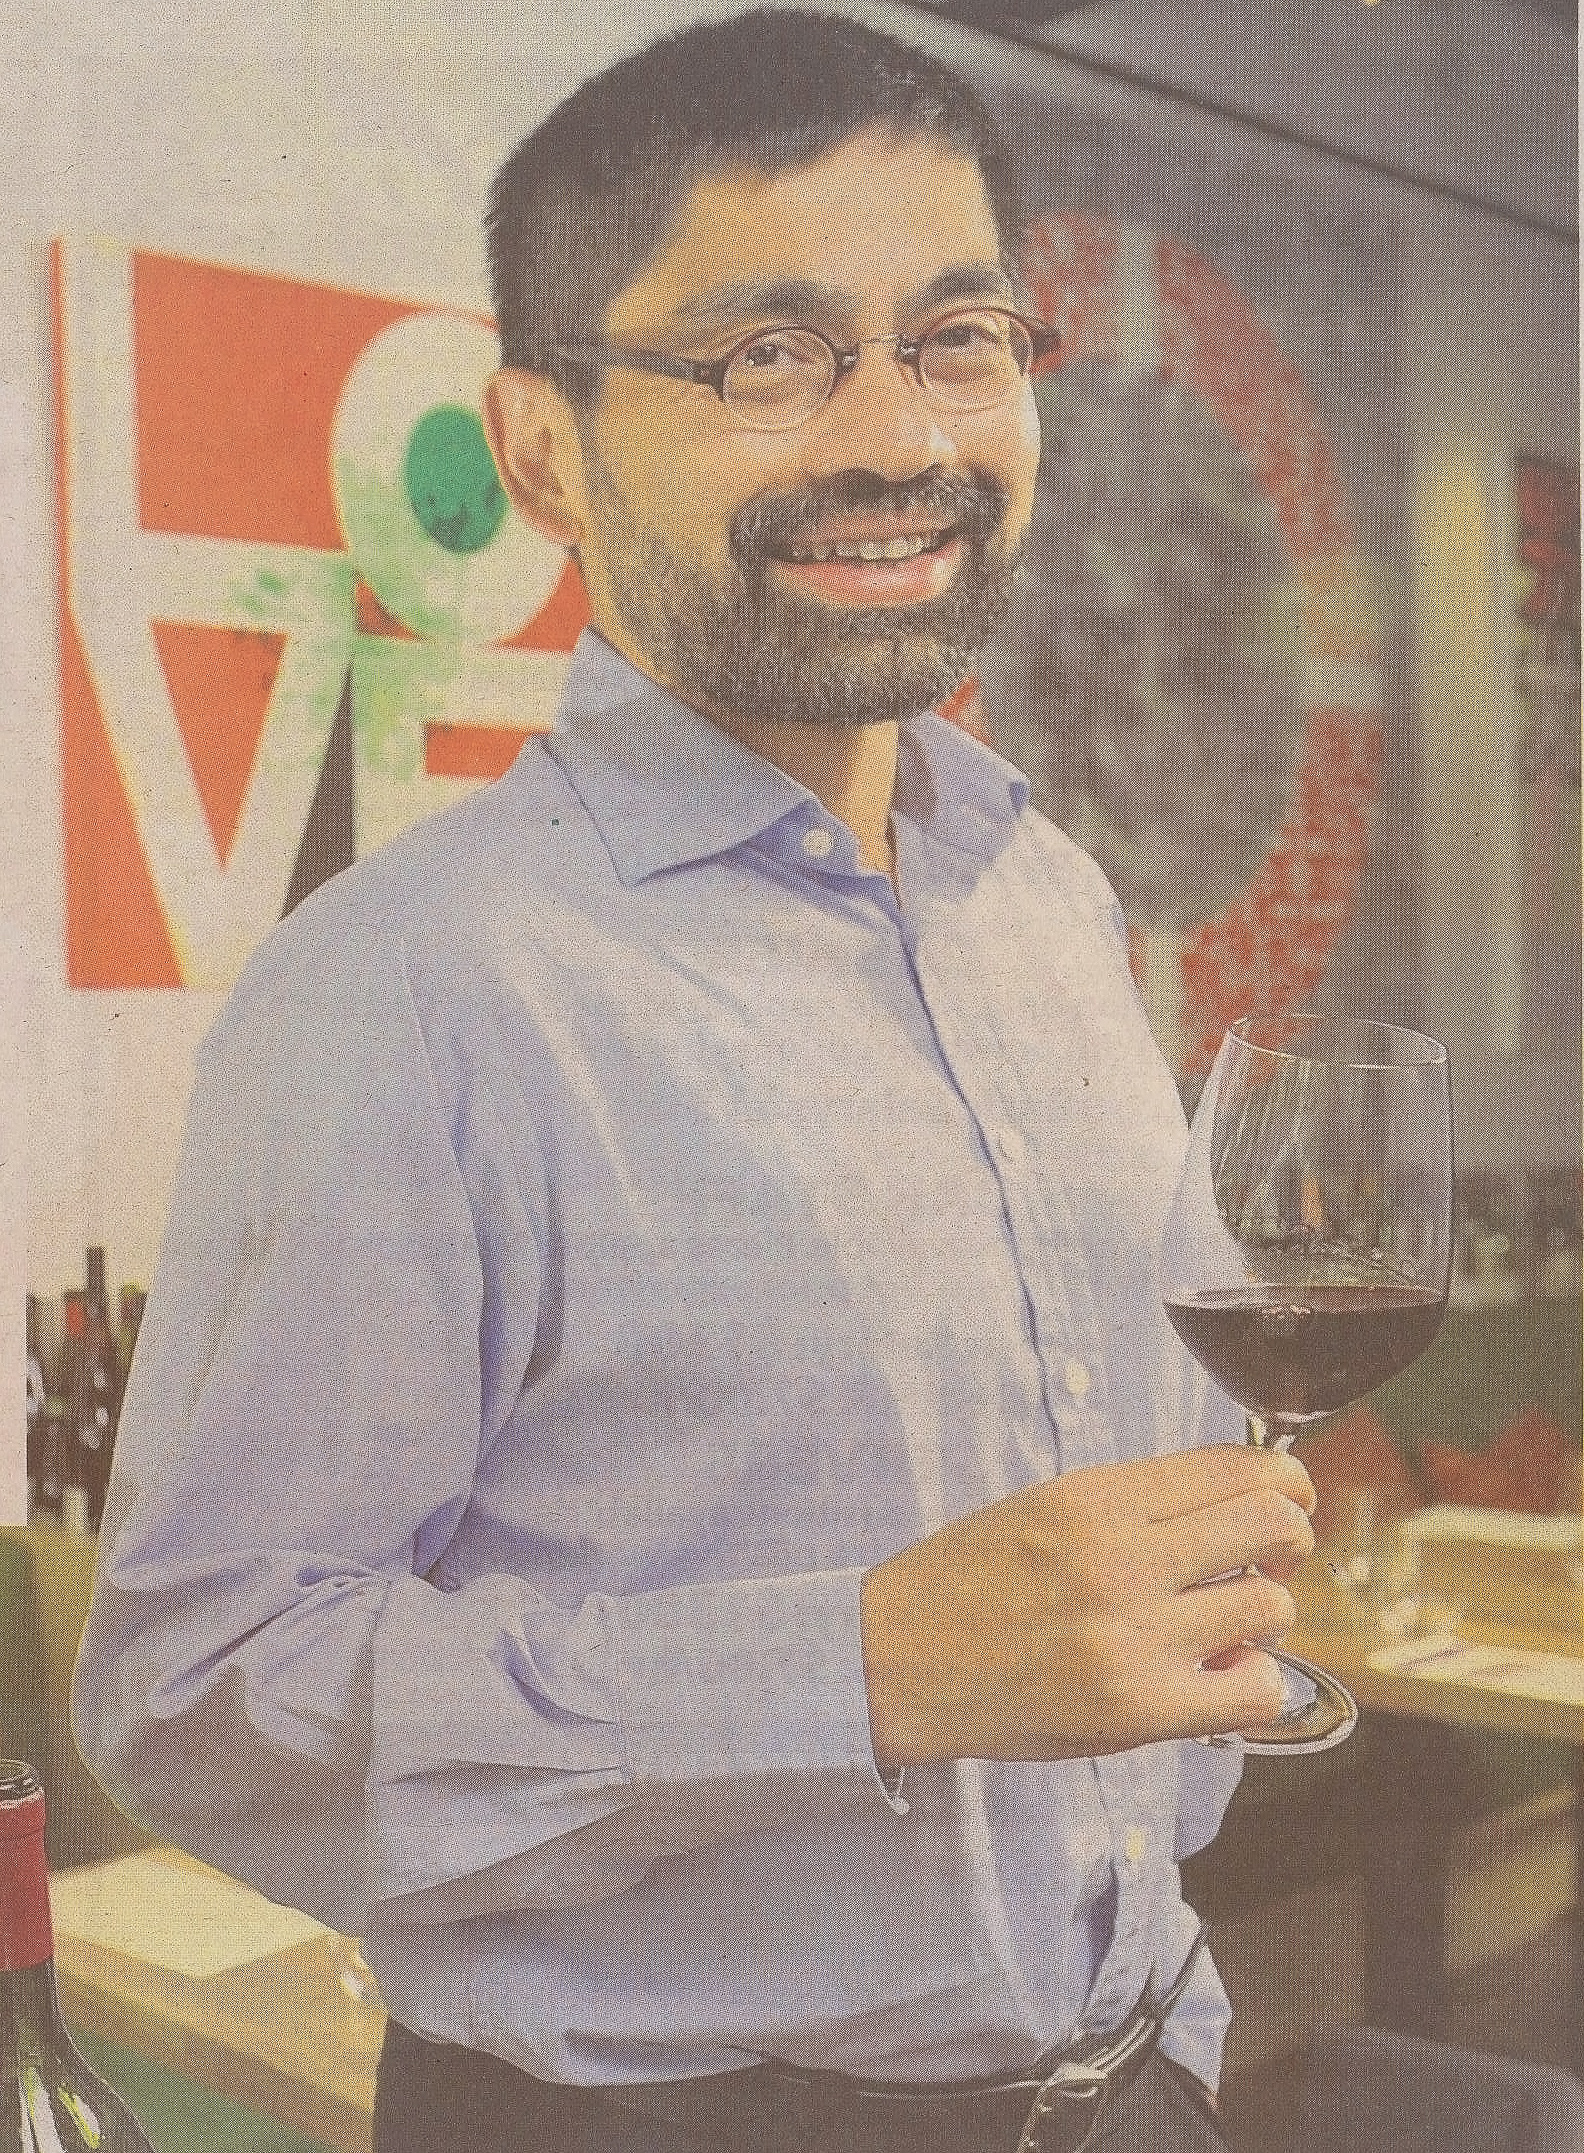 The Wine Educator with a nose for wine – The New Paper